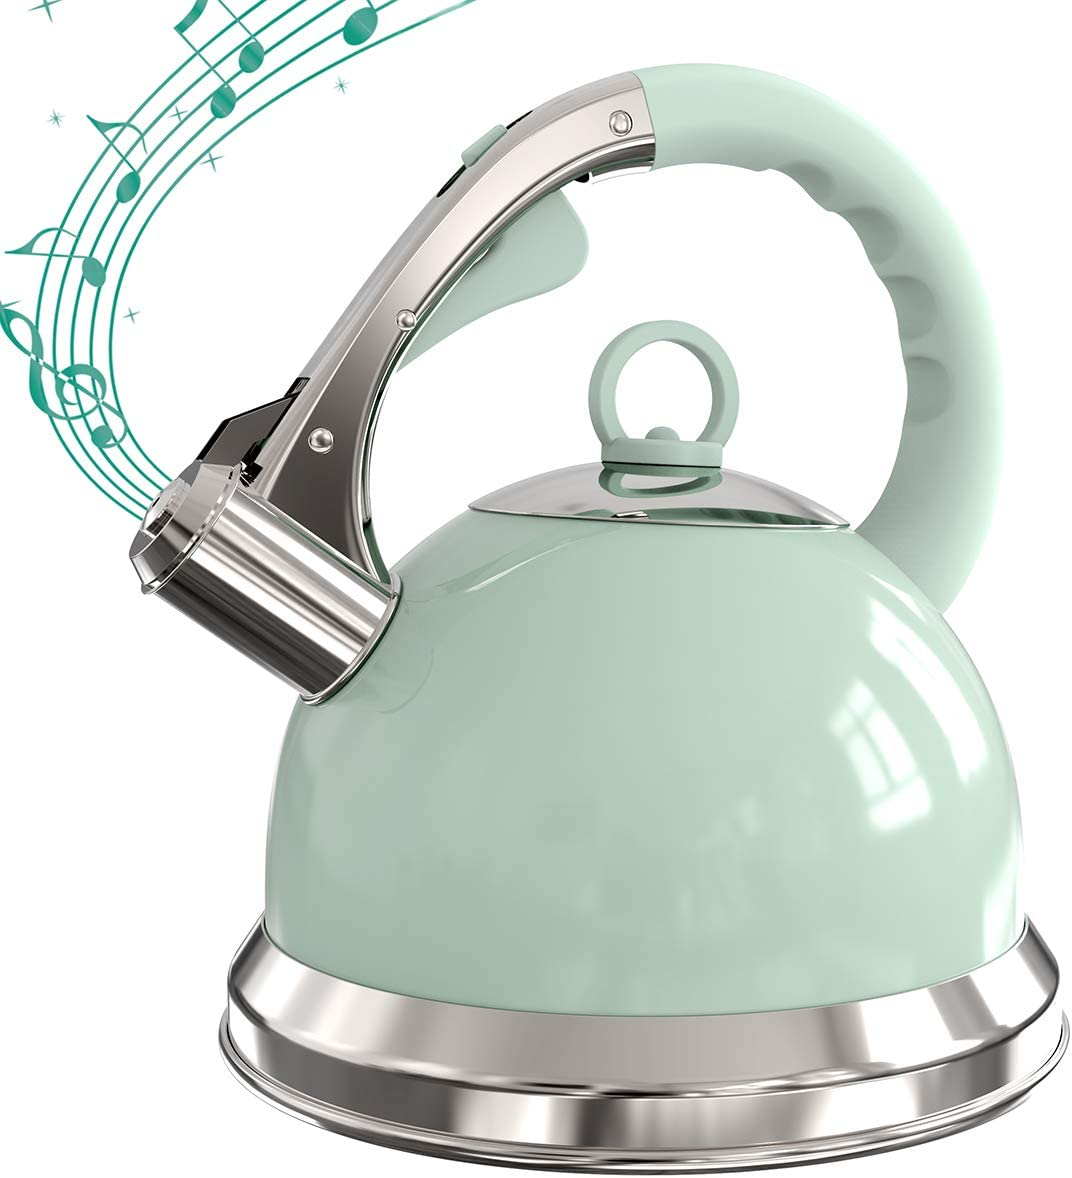 3 Litre Green Whistling Tea Kettle Stovetop Stainless Steel Teapot with Loud Whistle, Anti-Rust and Anti-heat Handle